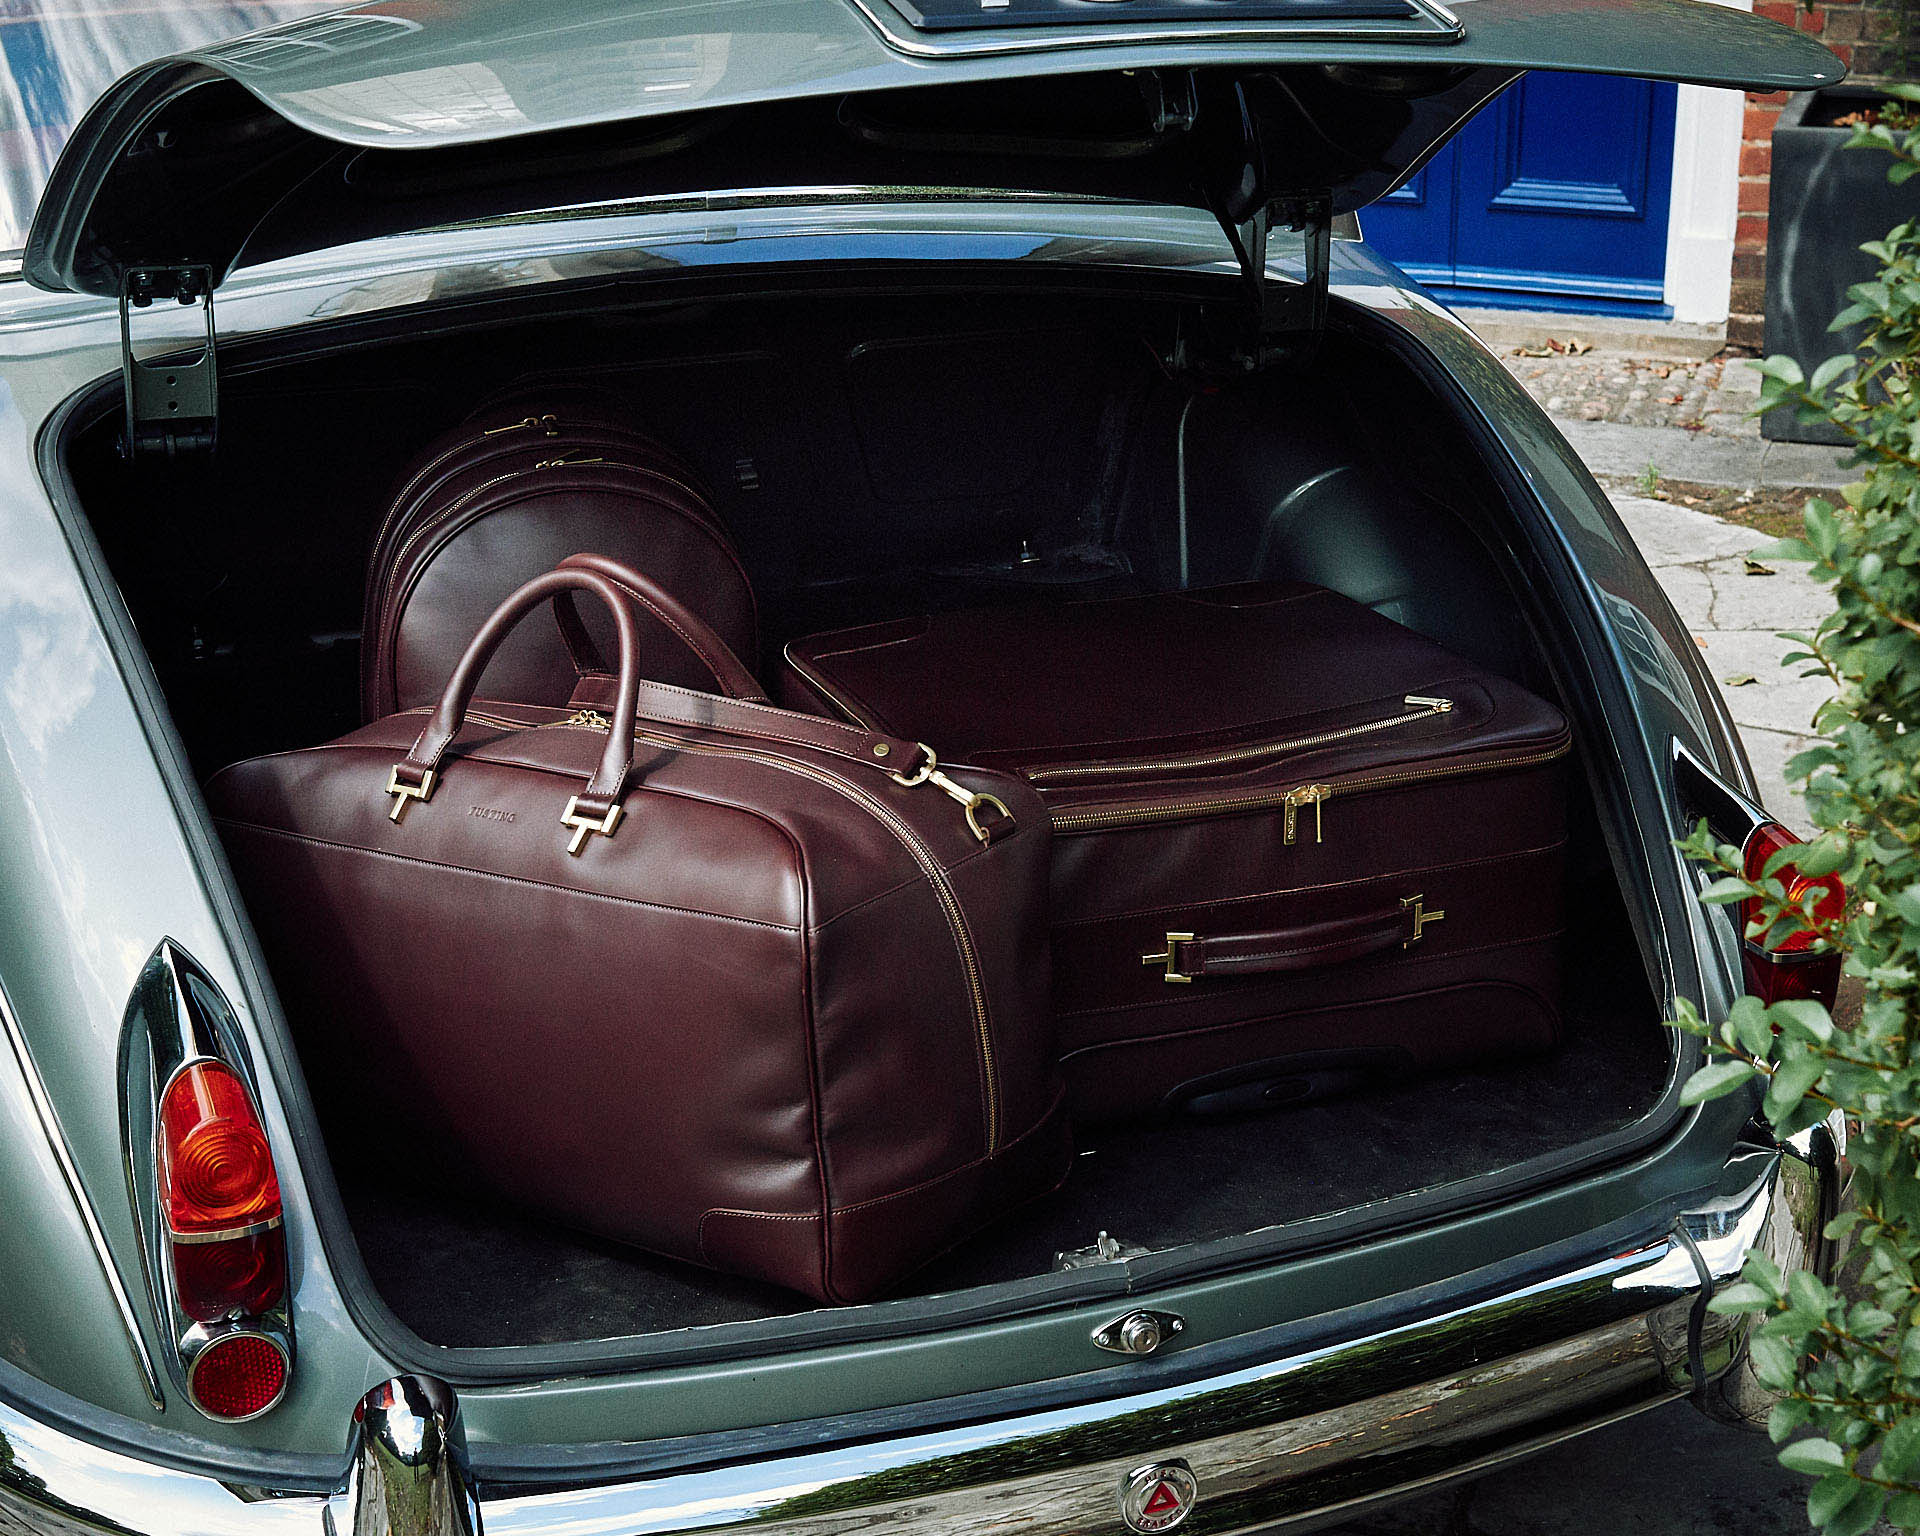 Leather bags in boot of classic jaguar by lifestyle photographer